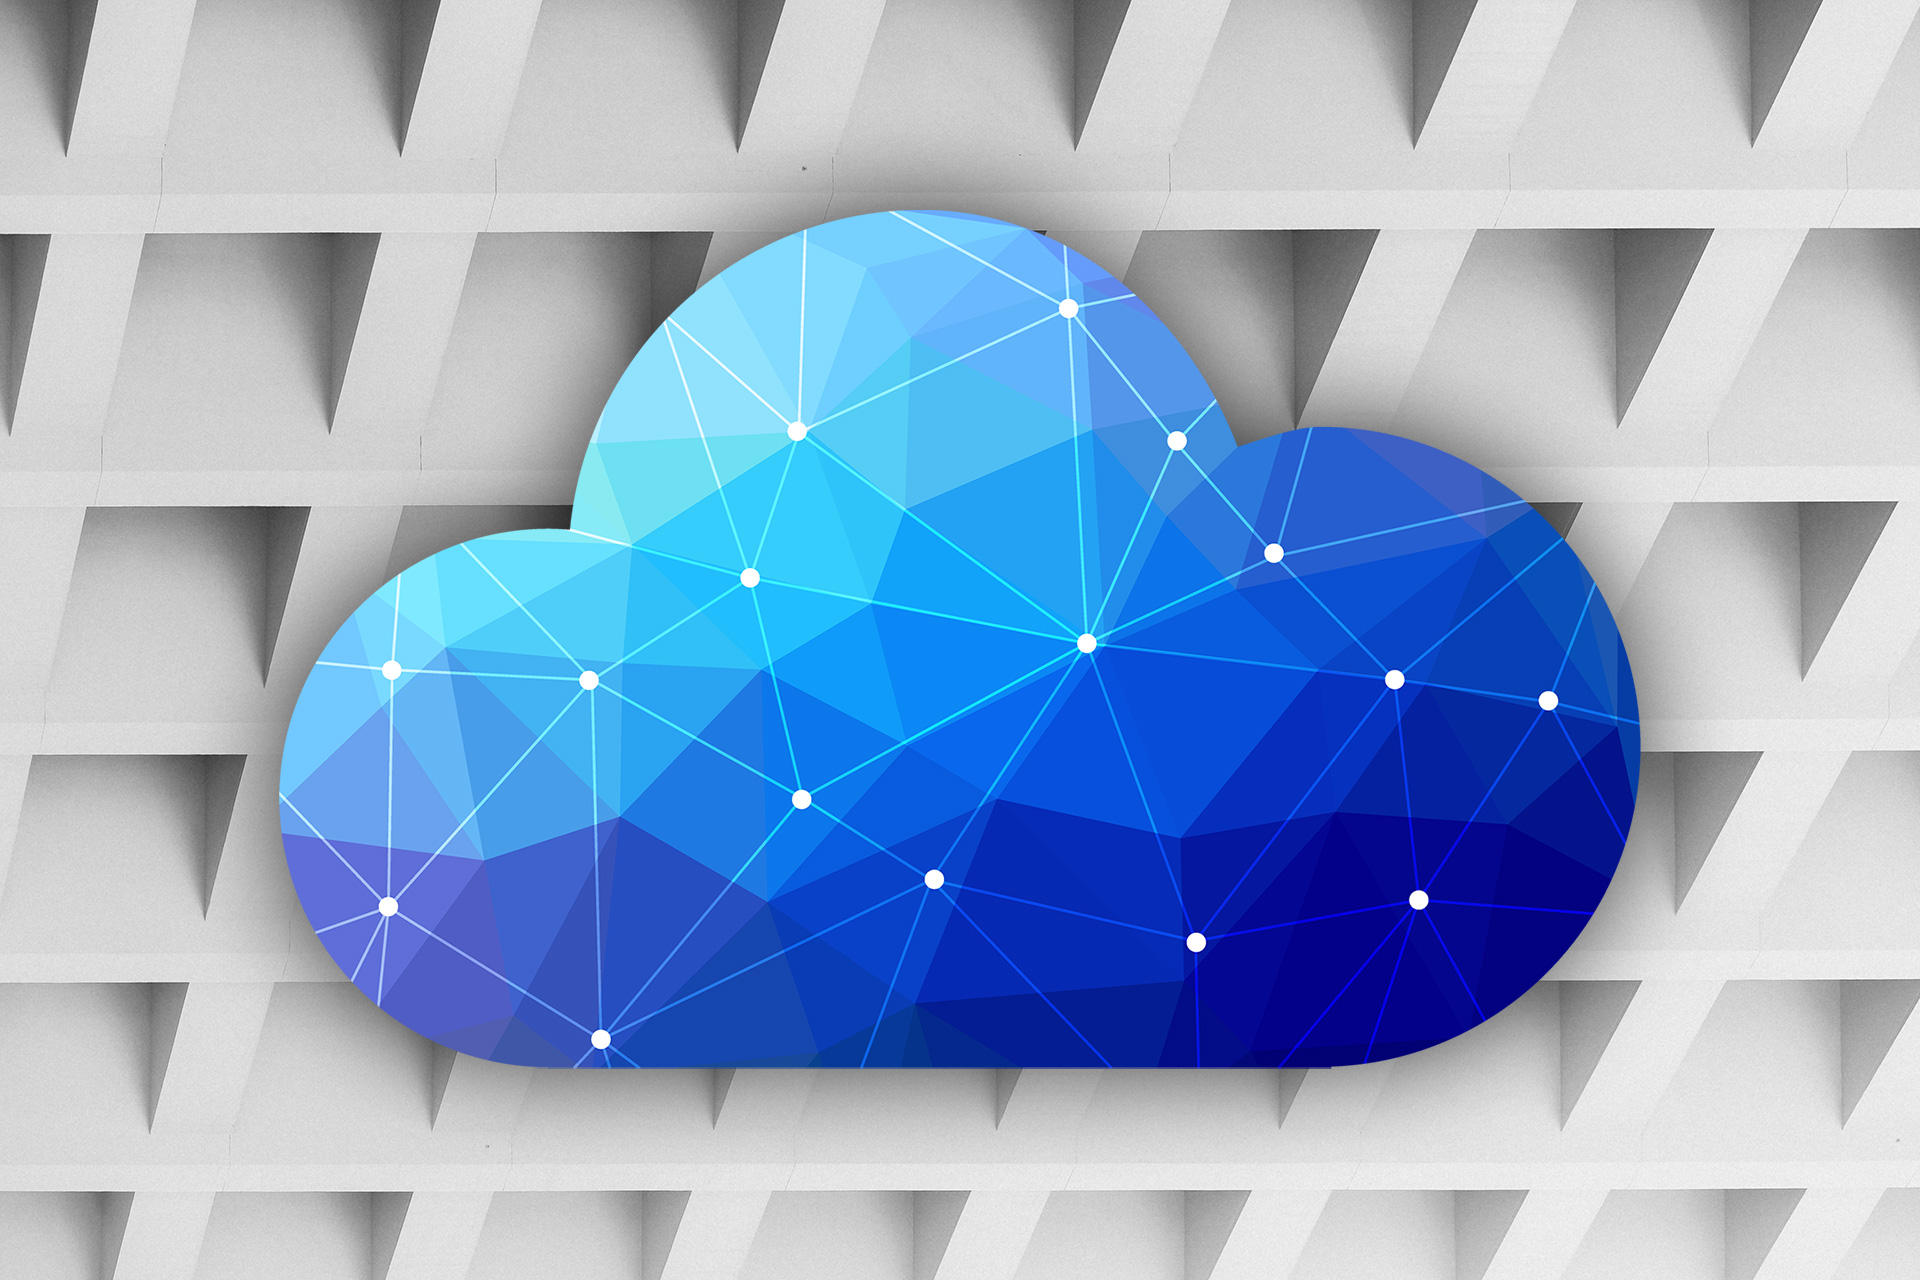 70% of organizations experienced a public cloud security incident in the last year - Help Net Security